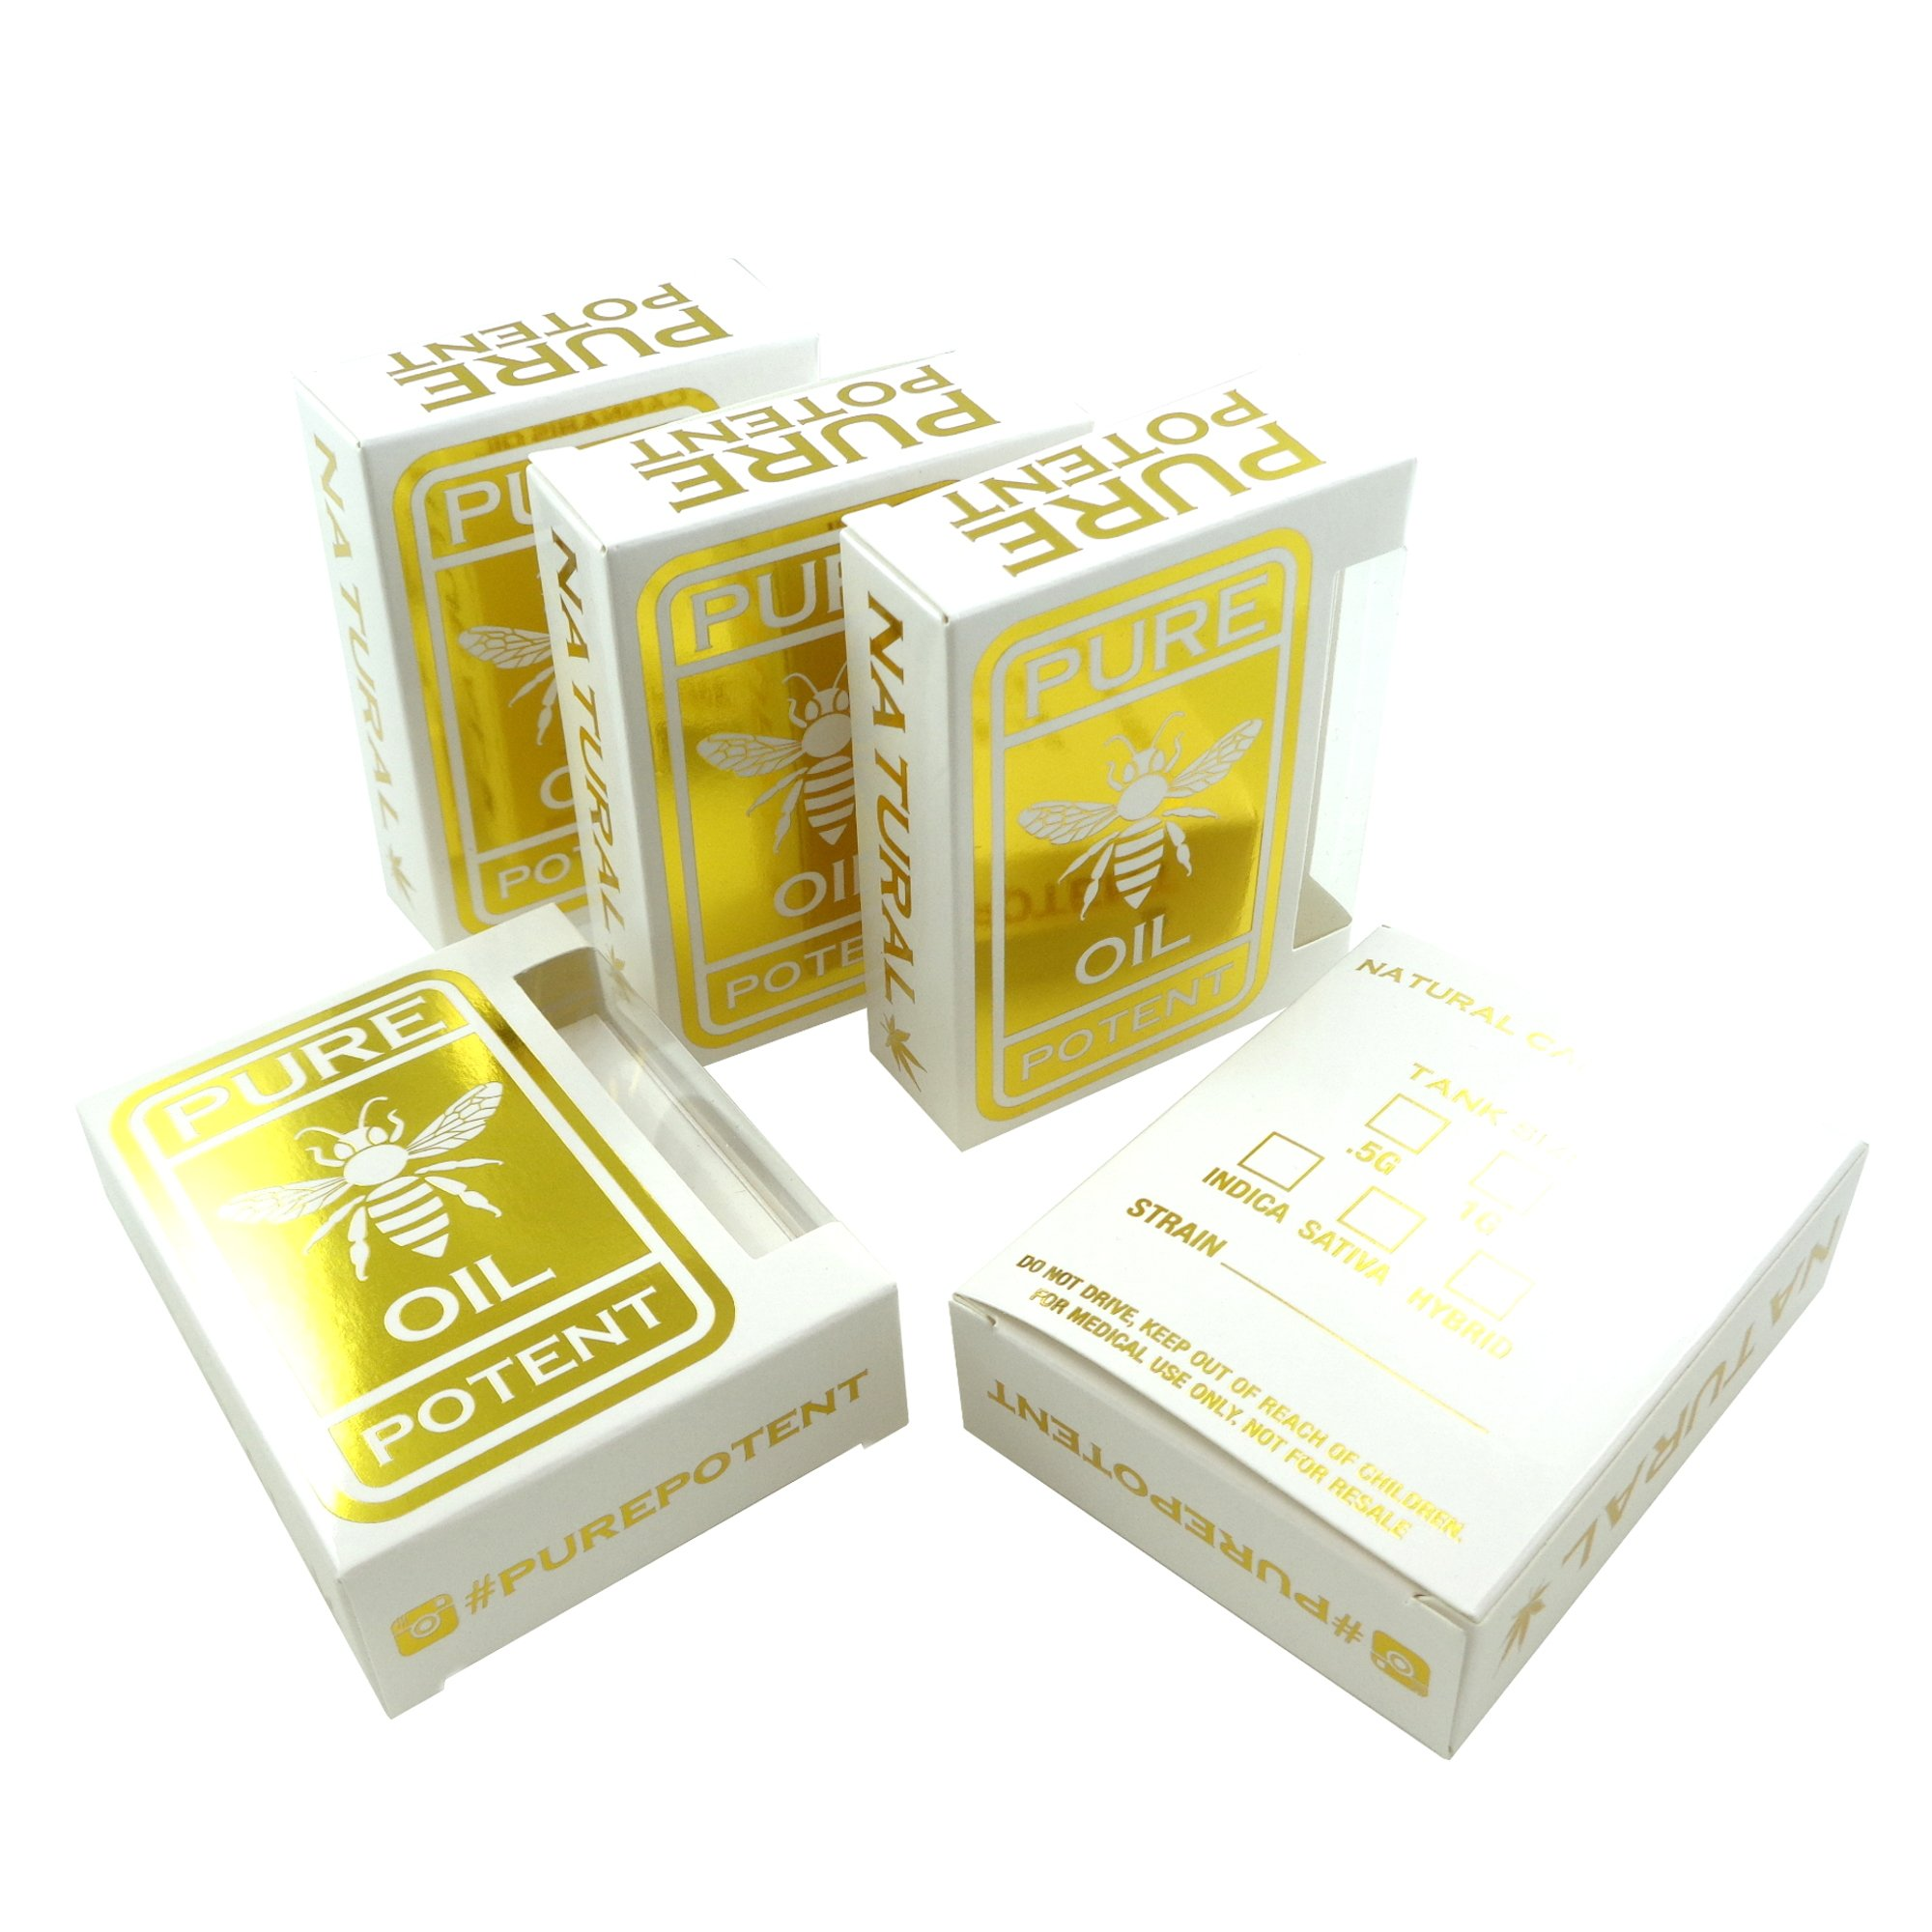 250 White Gold Pure Potent Oil Empty Display Packaging Boxes by Shatter Labels VB-003